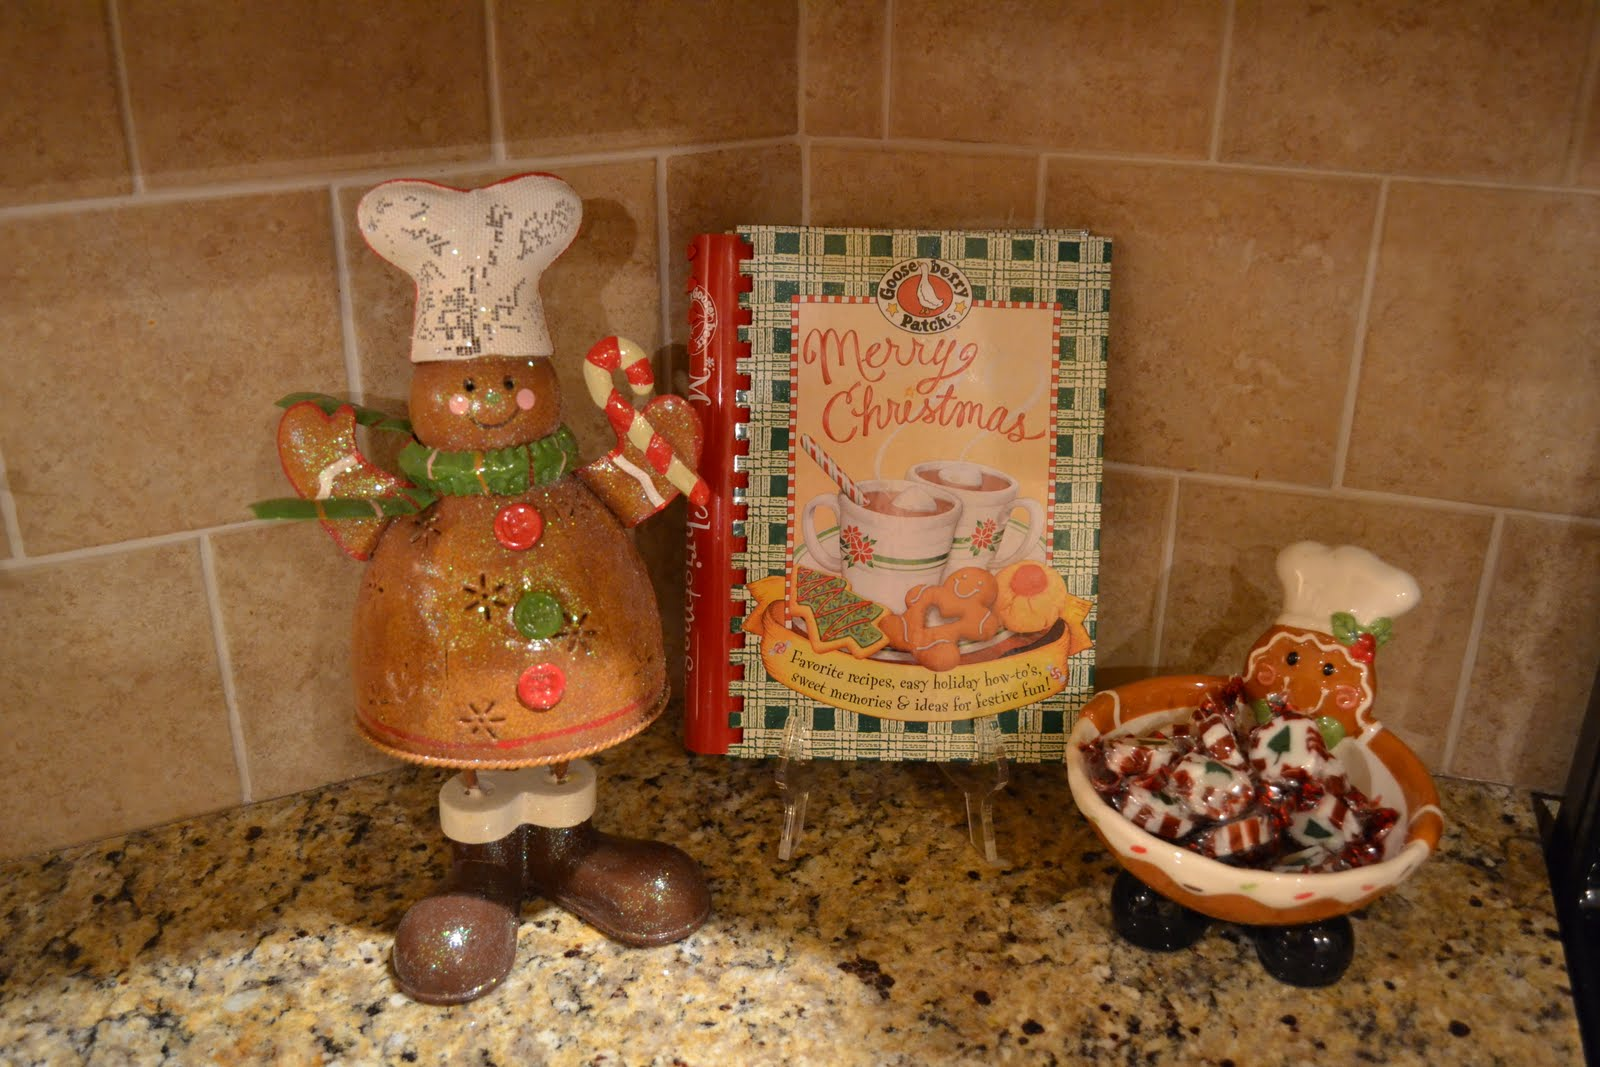 Kitchen Decor Above Cabinets Kristen S Creations Gingerbread Decorations Etsy Store